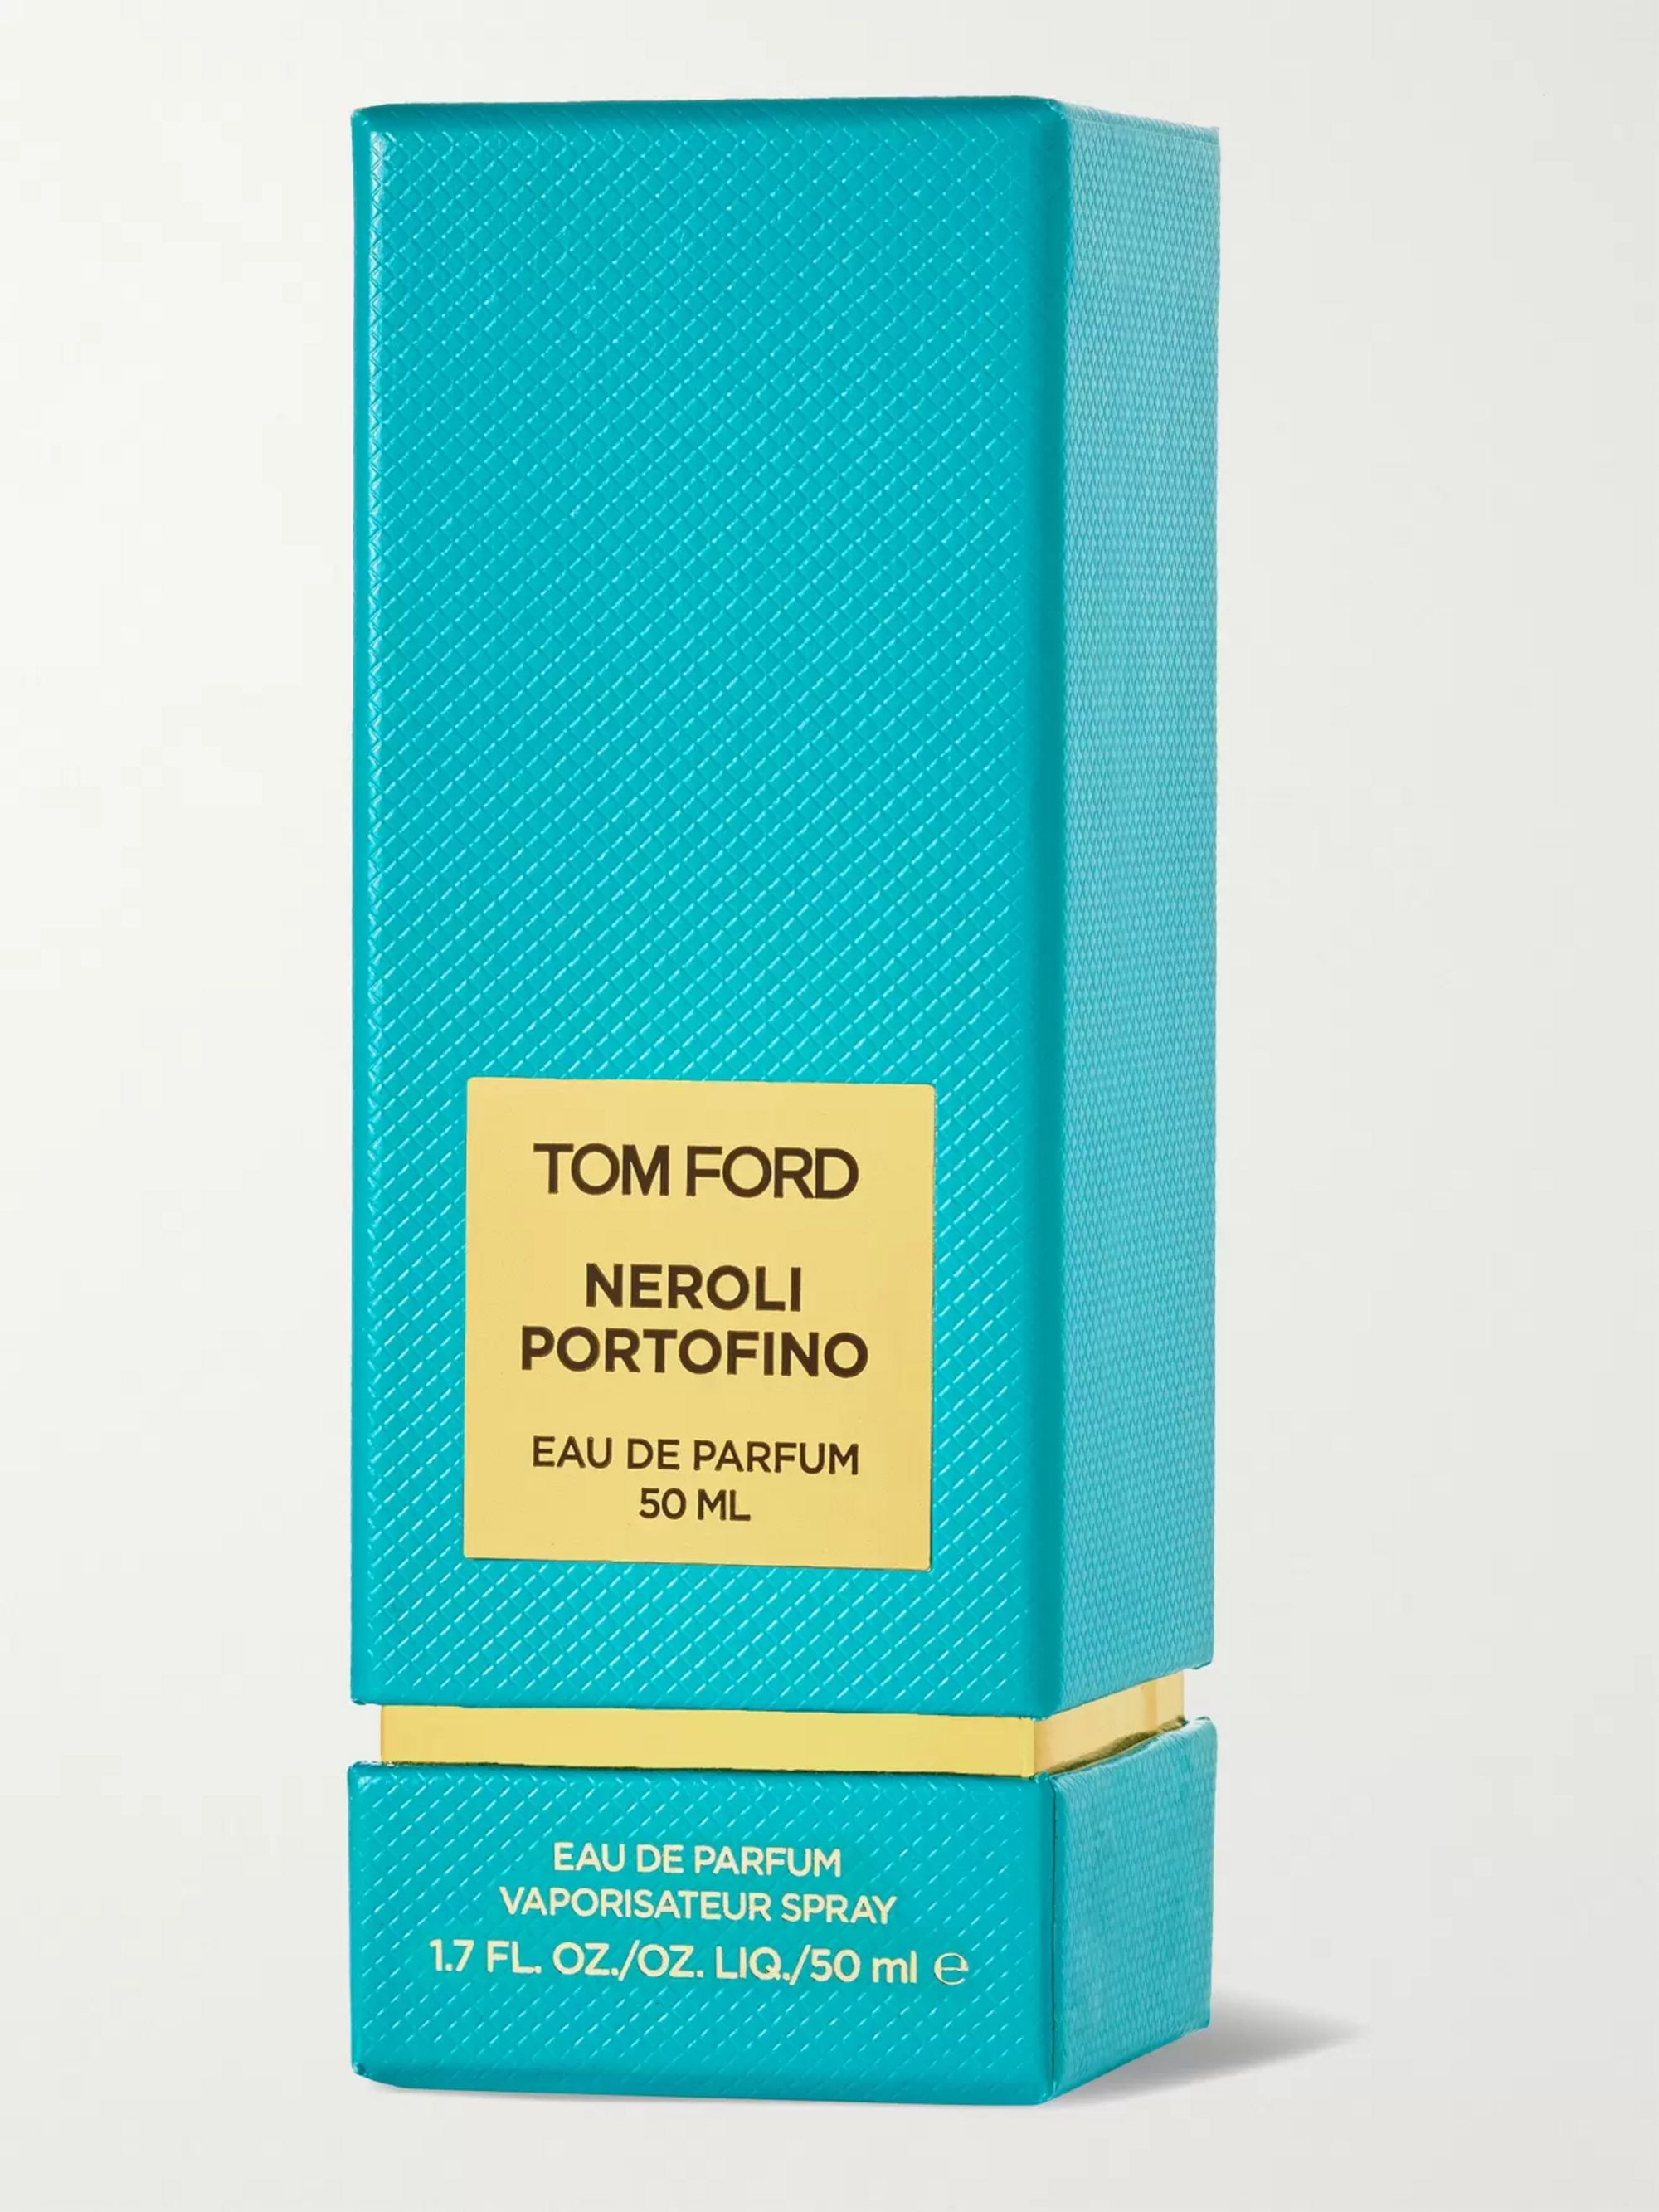 TOM FORD BEAUTY Neroli Portofino Eau de Parfum - Neroli, Bergamot & Lemon, 50ml